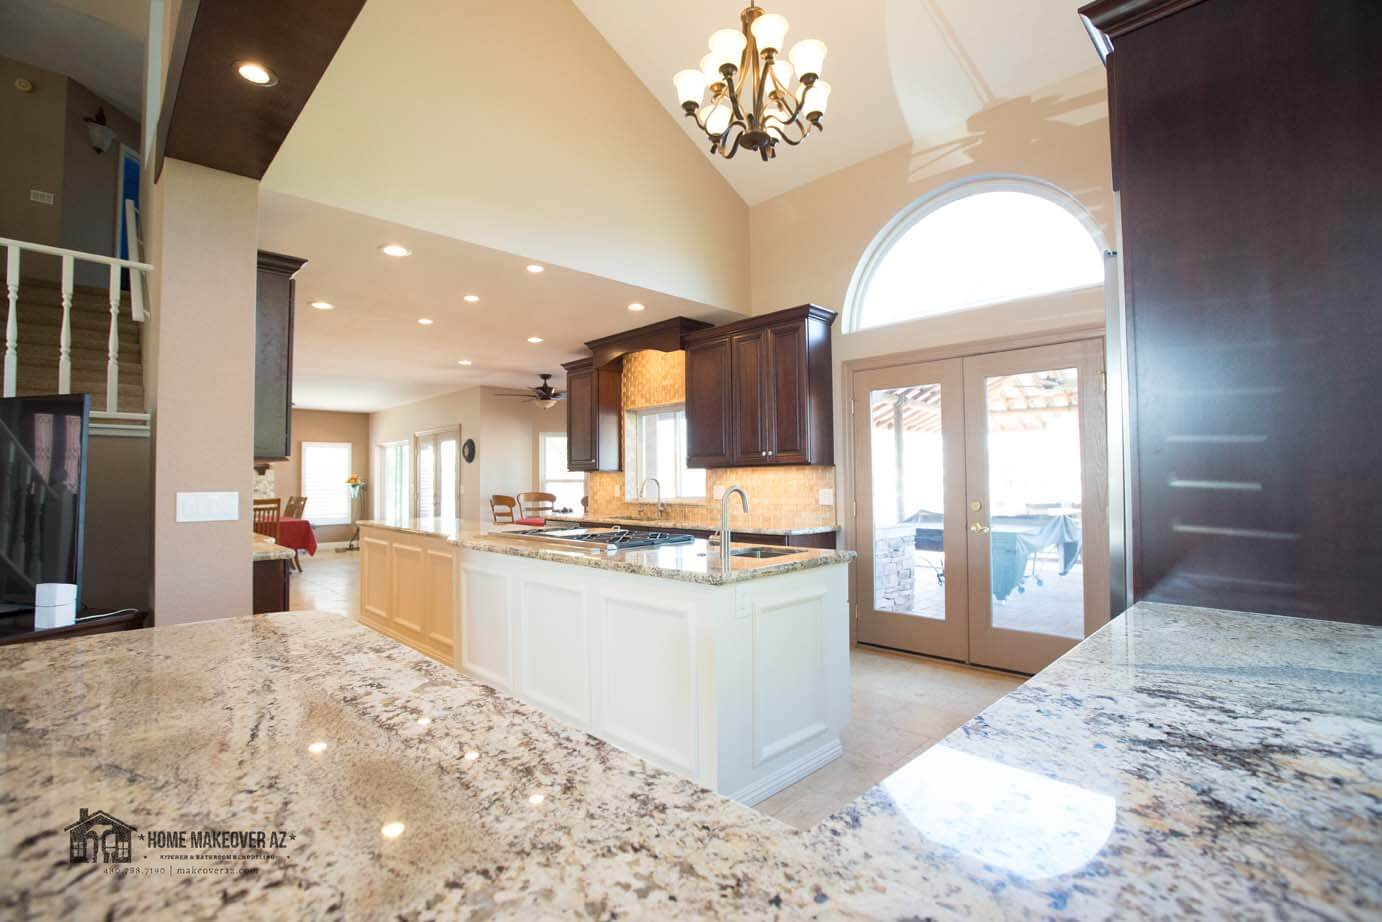 The Kitchen Had A Formal Dining Area With Vaulted Ceilings Before Homeowner Real Vision In Expanding Into That Just